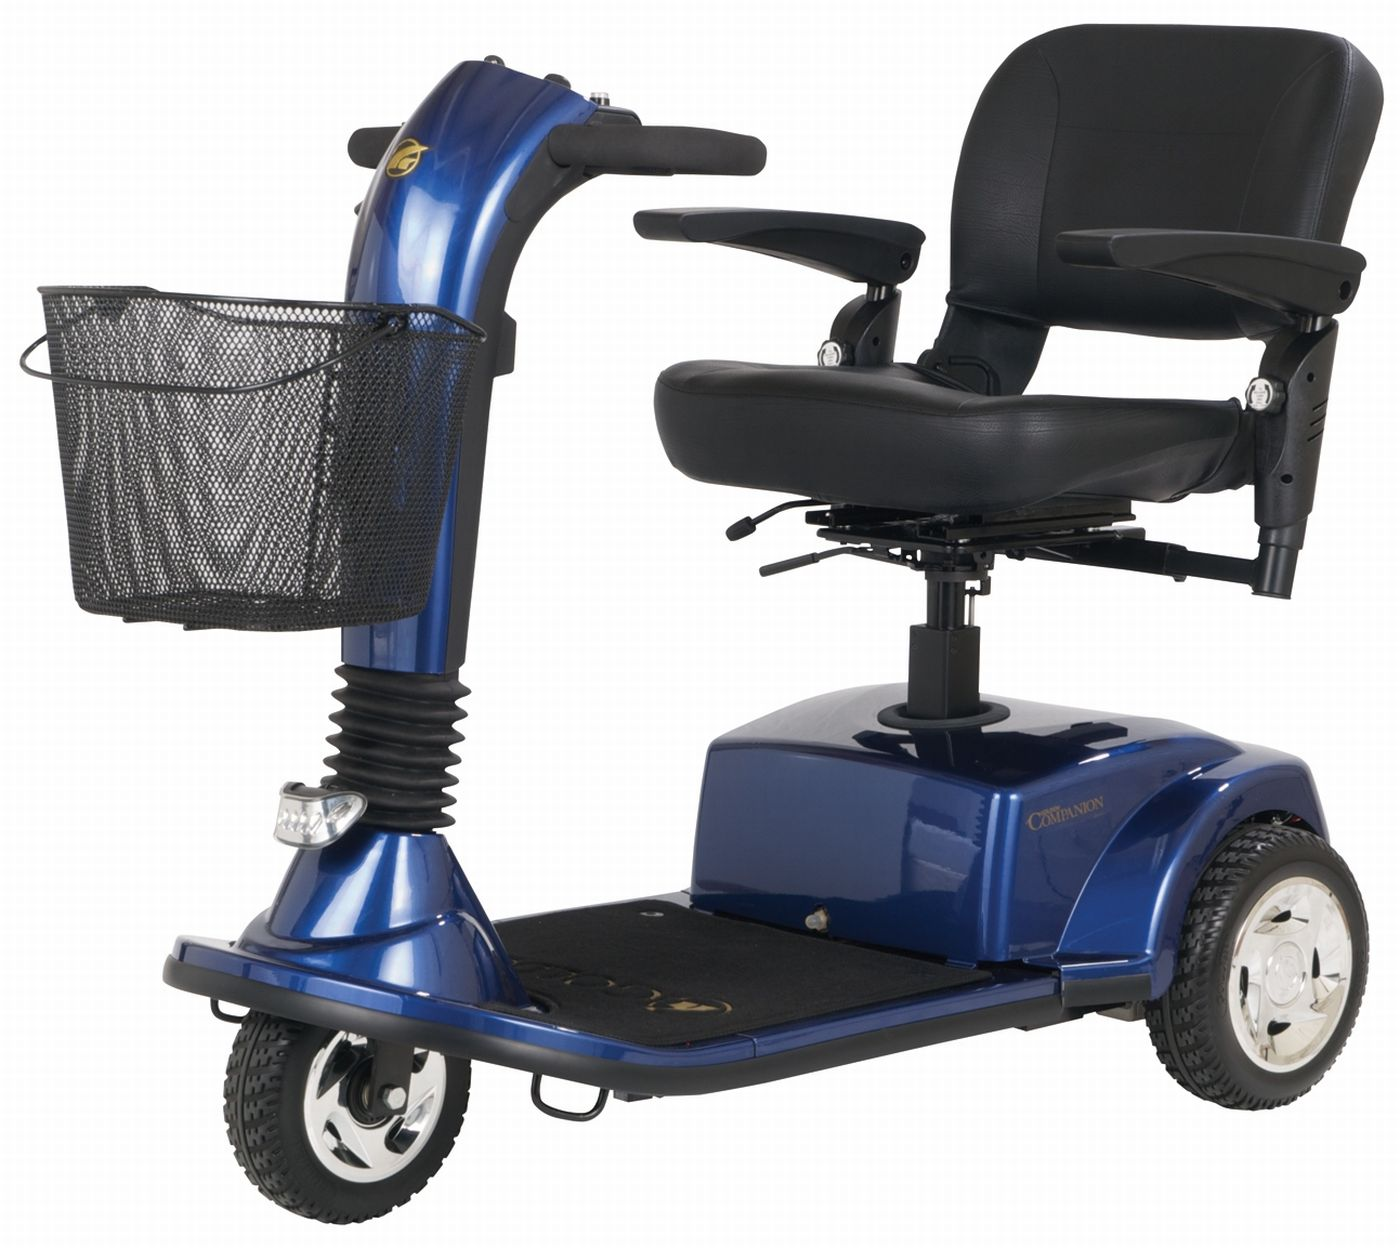 golden power chair accent chairs canada companion ii 3 wheel gc340 parts all mobility brands scooter and monster